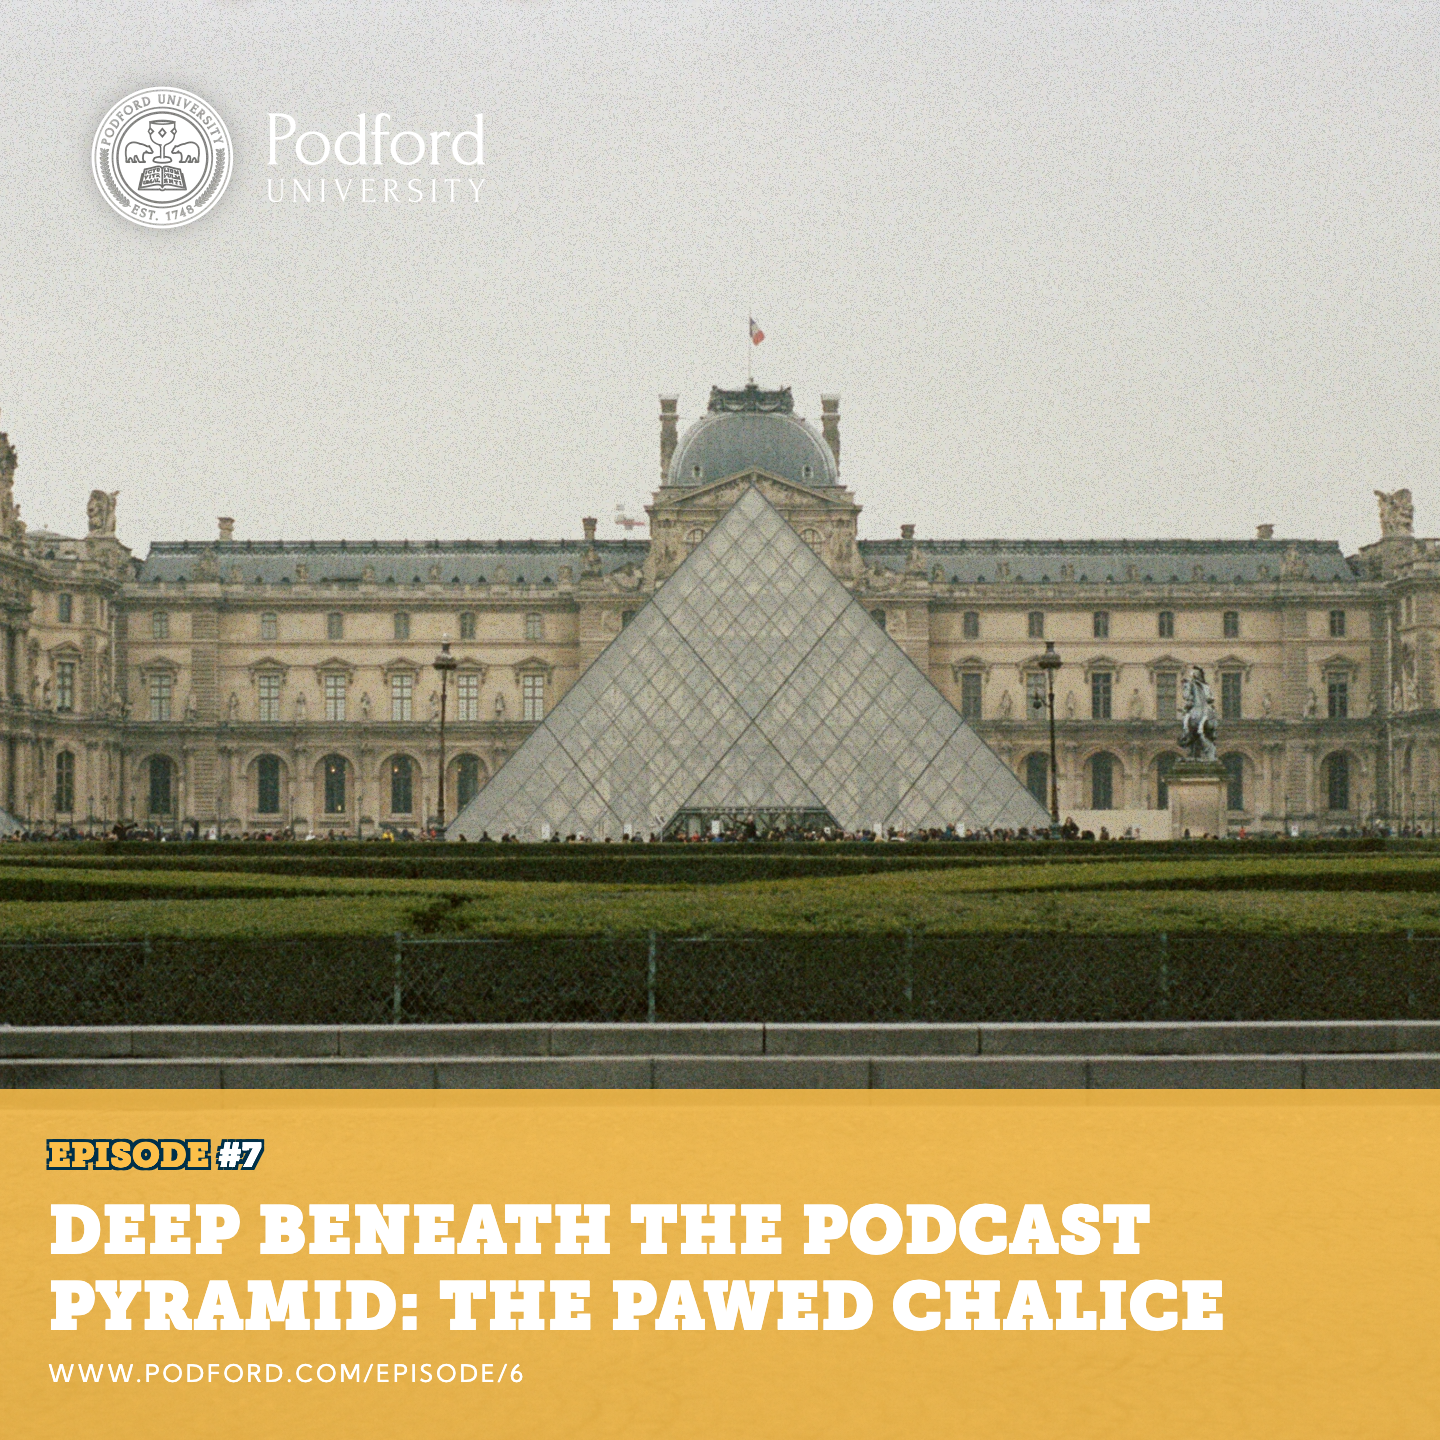 Podford University: Deep Beneath The Podcast Pyramid, The Pawed Chalice